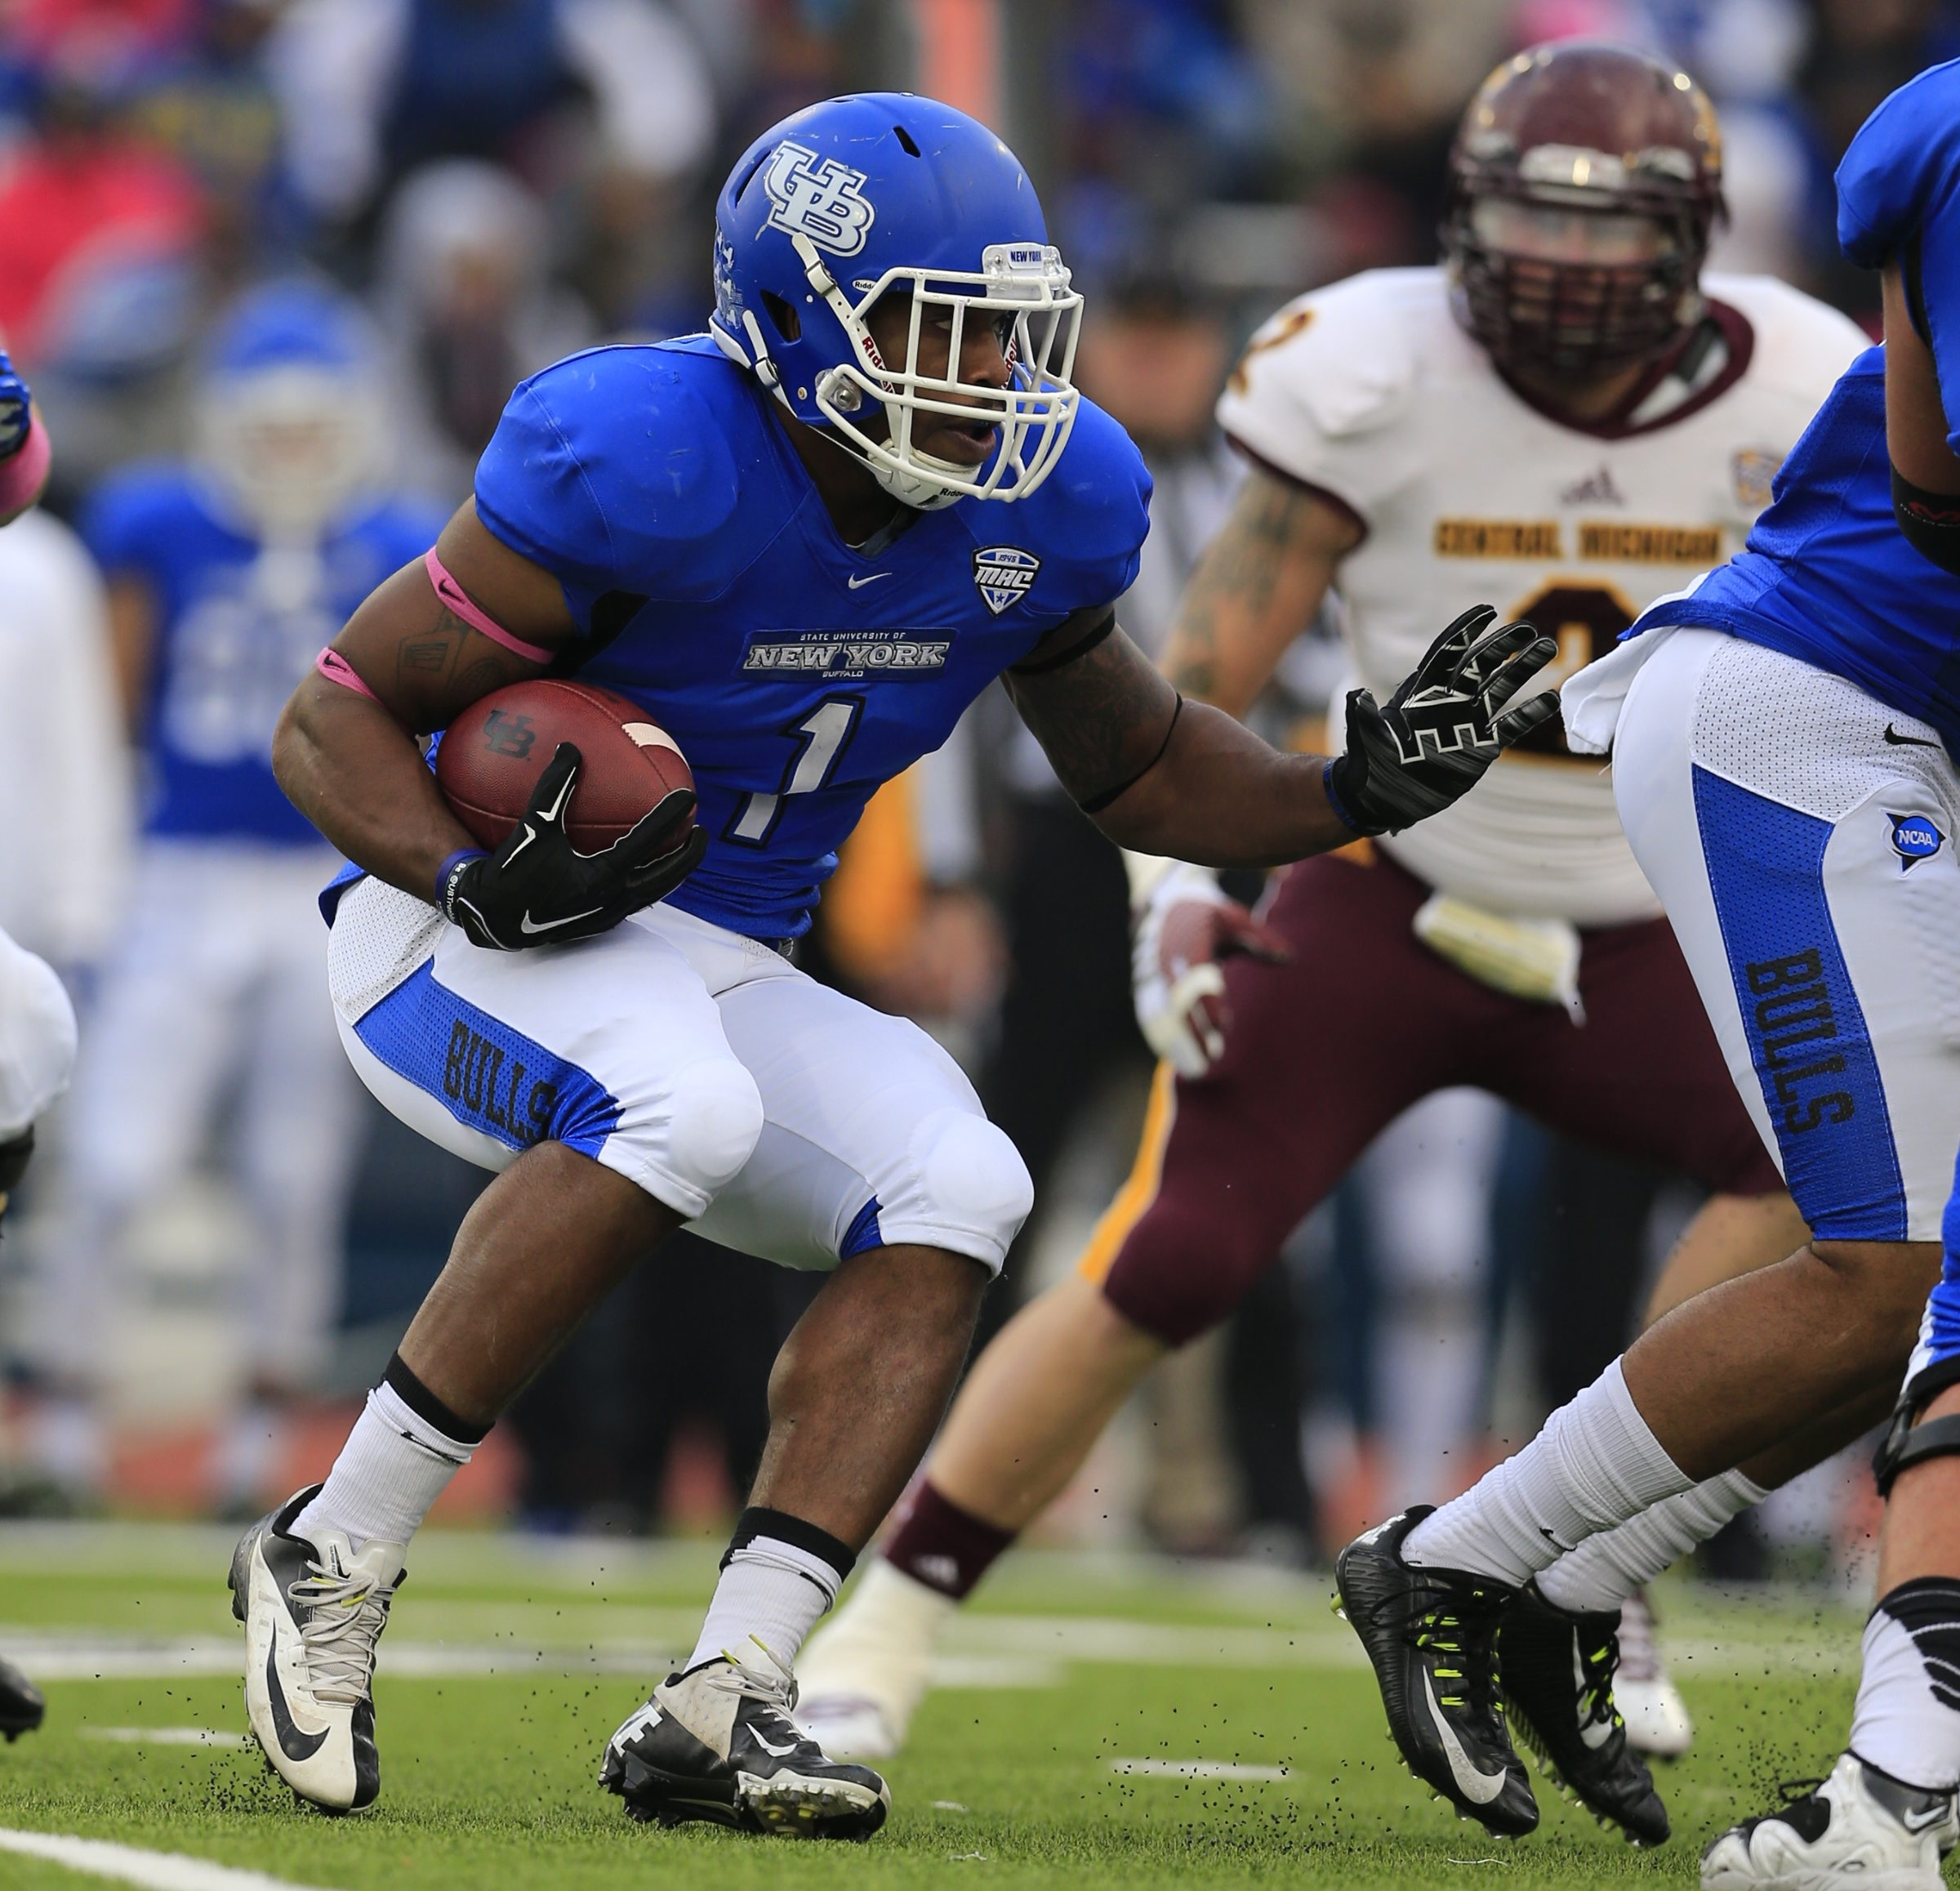 University at Buffalo running back Anthone Taylor found running room hard to come by against Central Michigan.